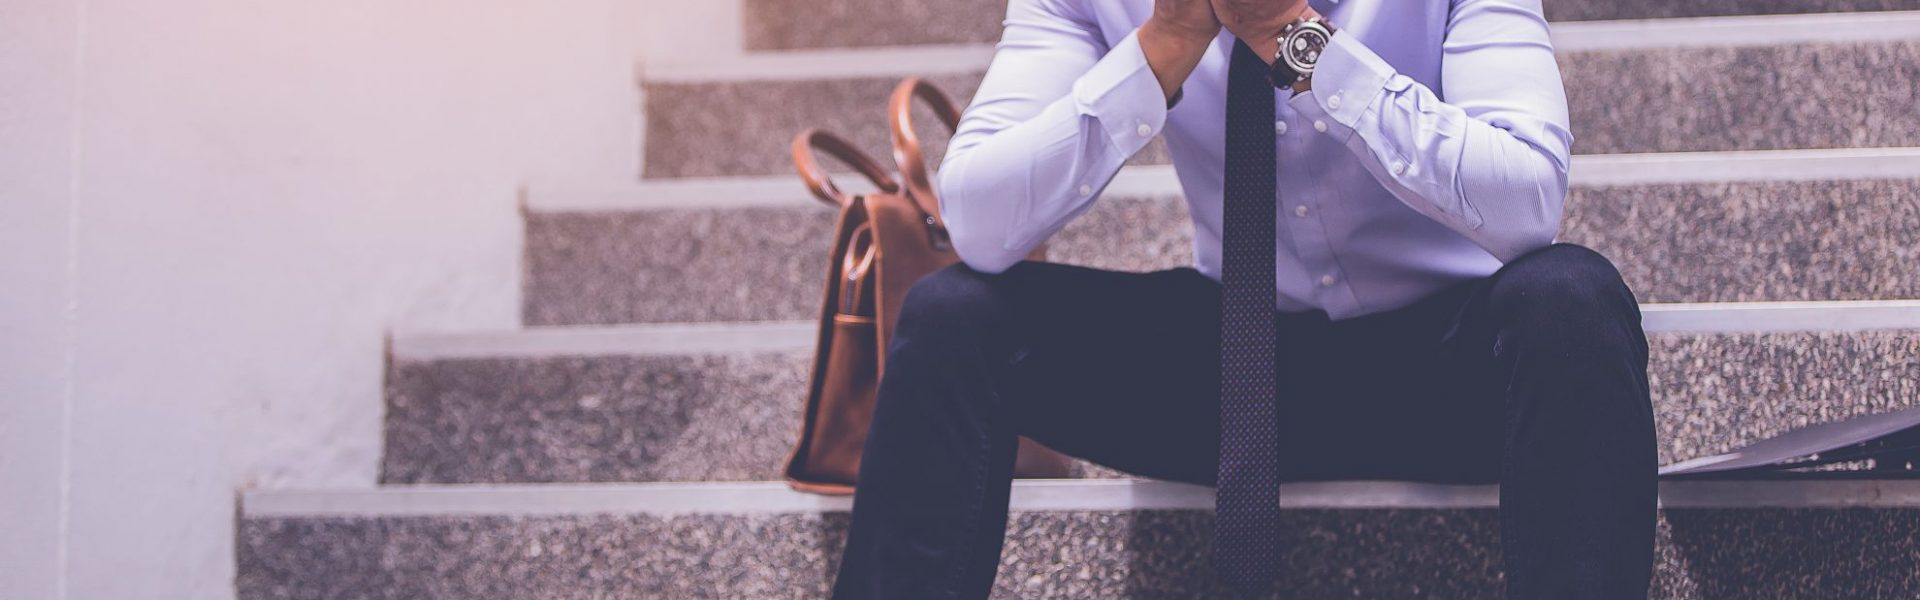 stressed-businessman-with-headache-sitting-at-stairway-disappointed-for-job-search-1980x1320